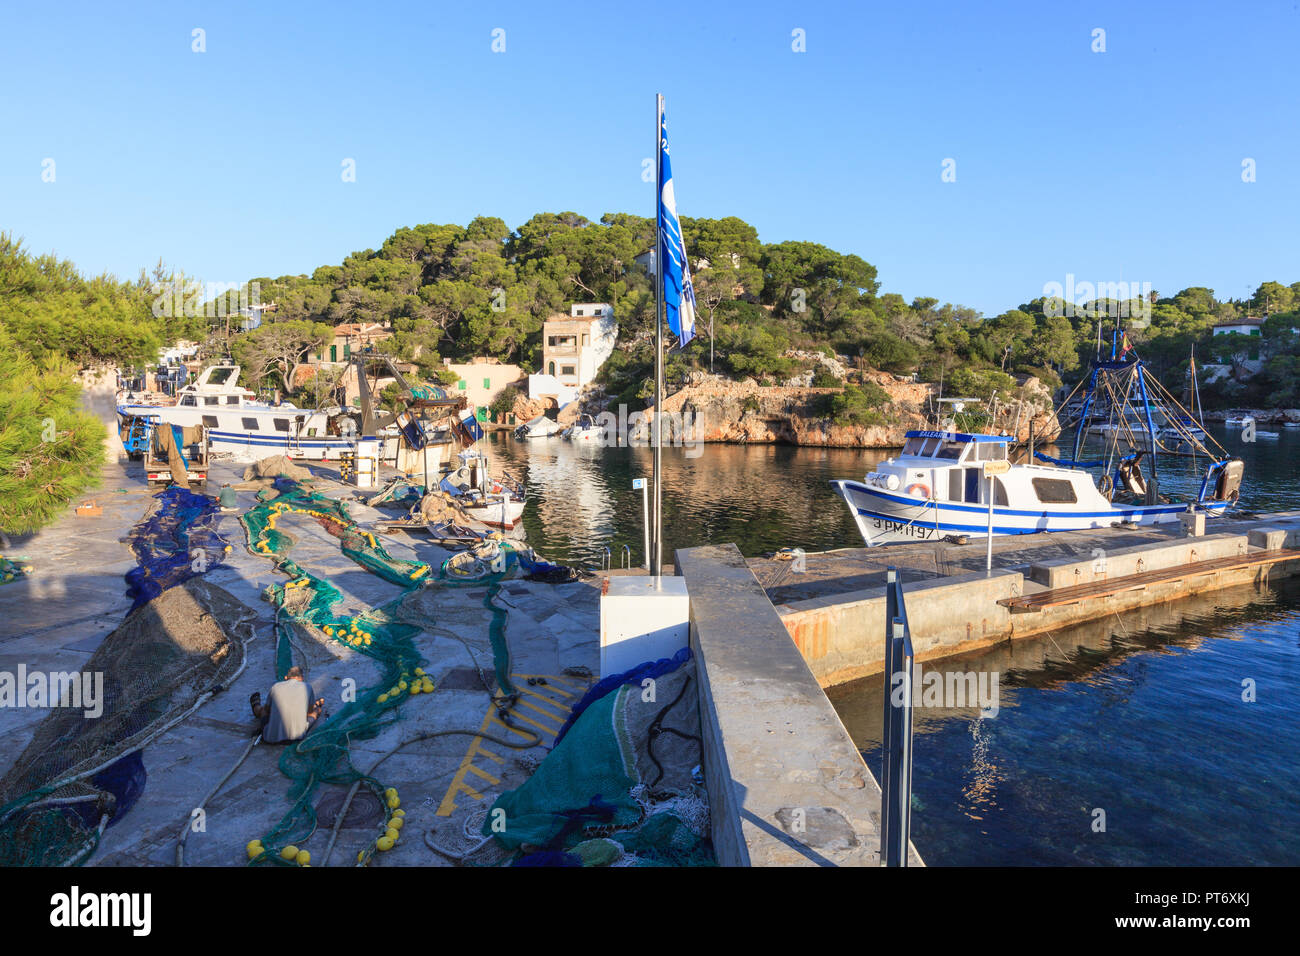 Early in the morning in the port of Cala Figuera, Santanyi, Europe, Spain, Mallorca, Cala Figuera, Santanyi, Balearic Islands, Spain, Mediterranean Se Stock Photo